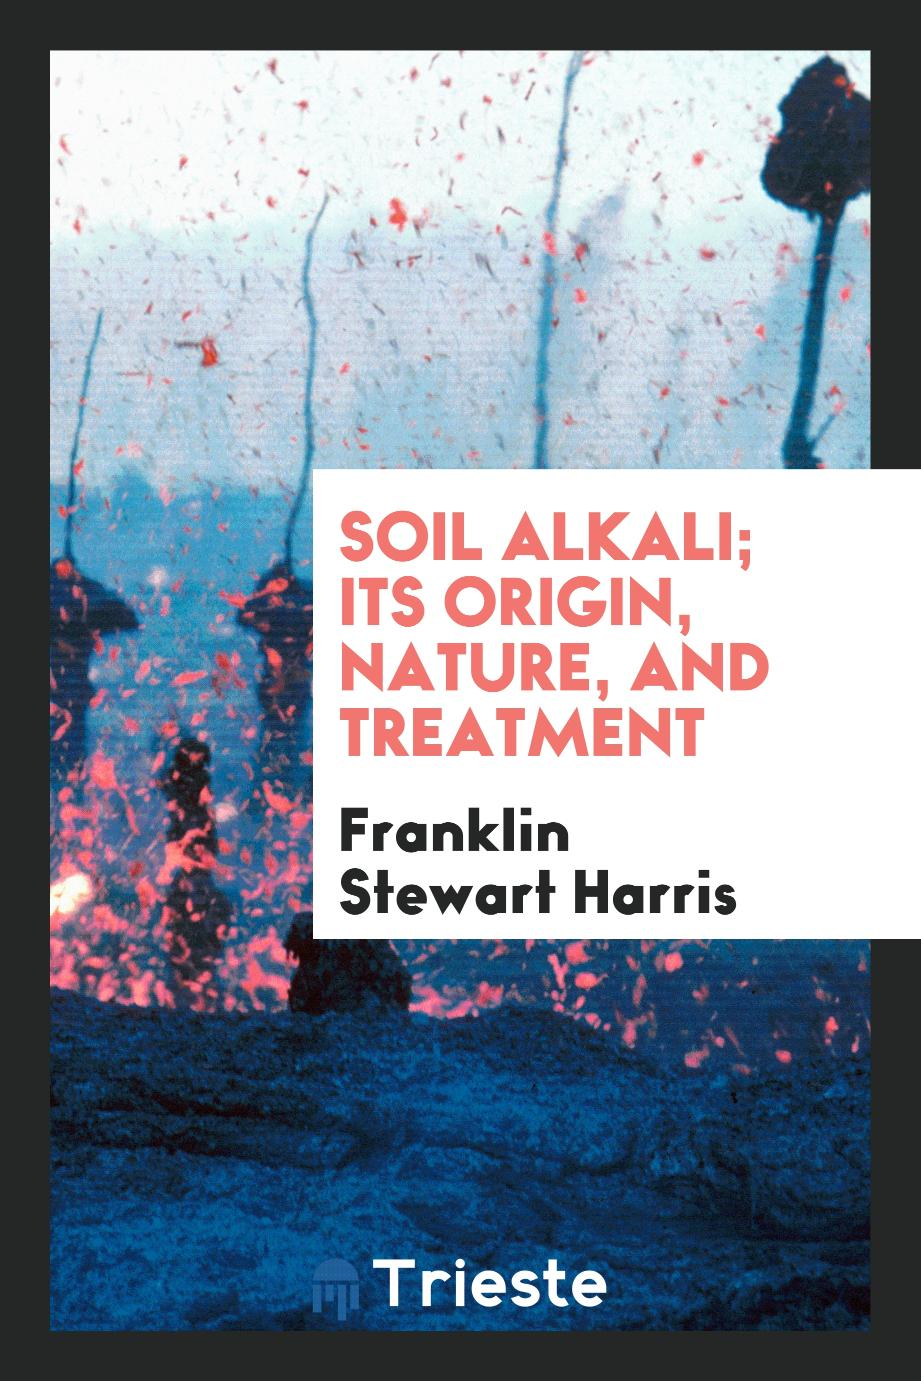 Soil alkali; its origin, nature, and treatment